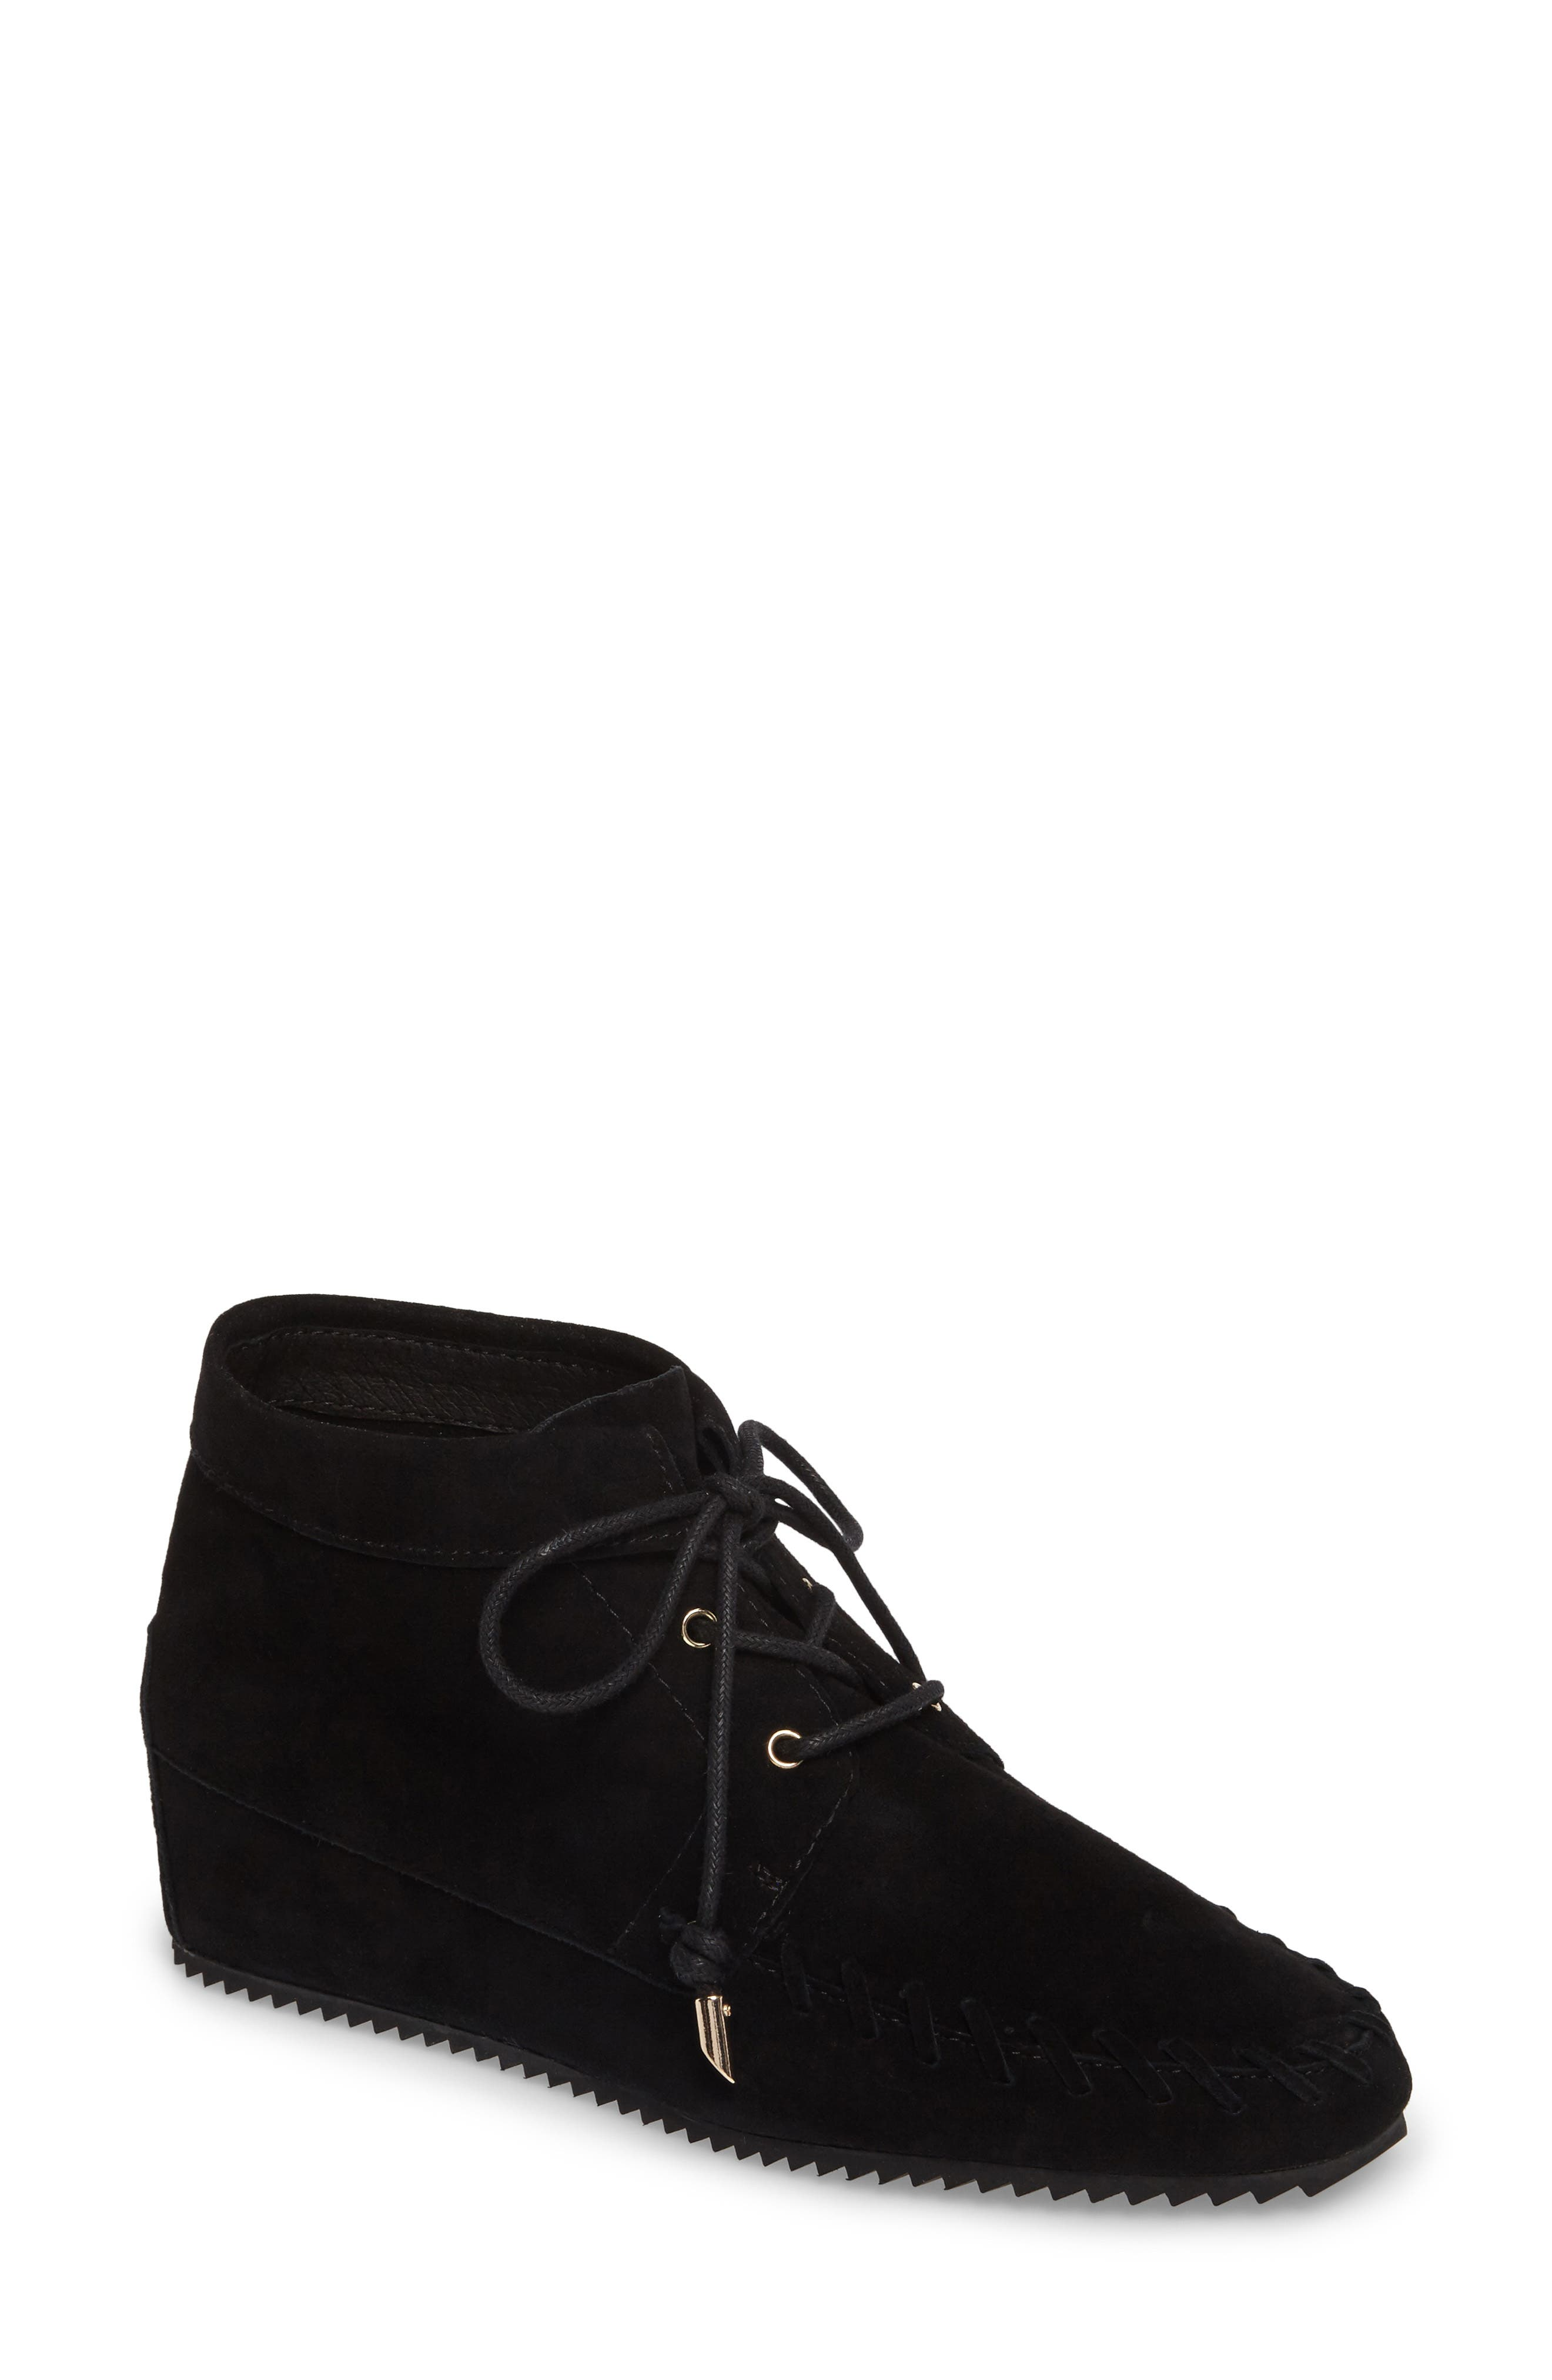 Jenna Wedge Bootie,                         Main,                         color, 001